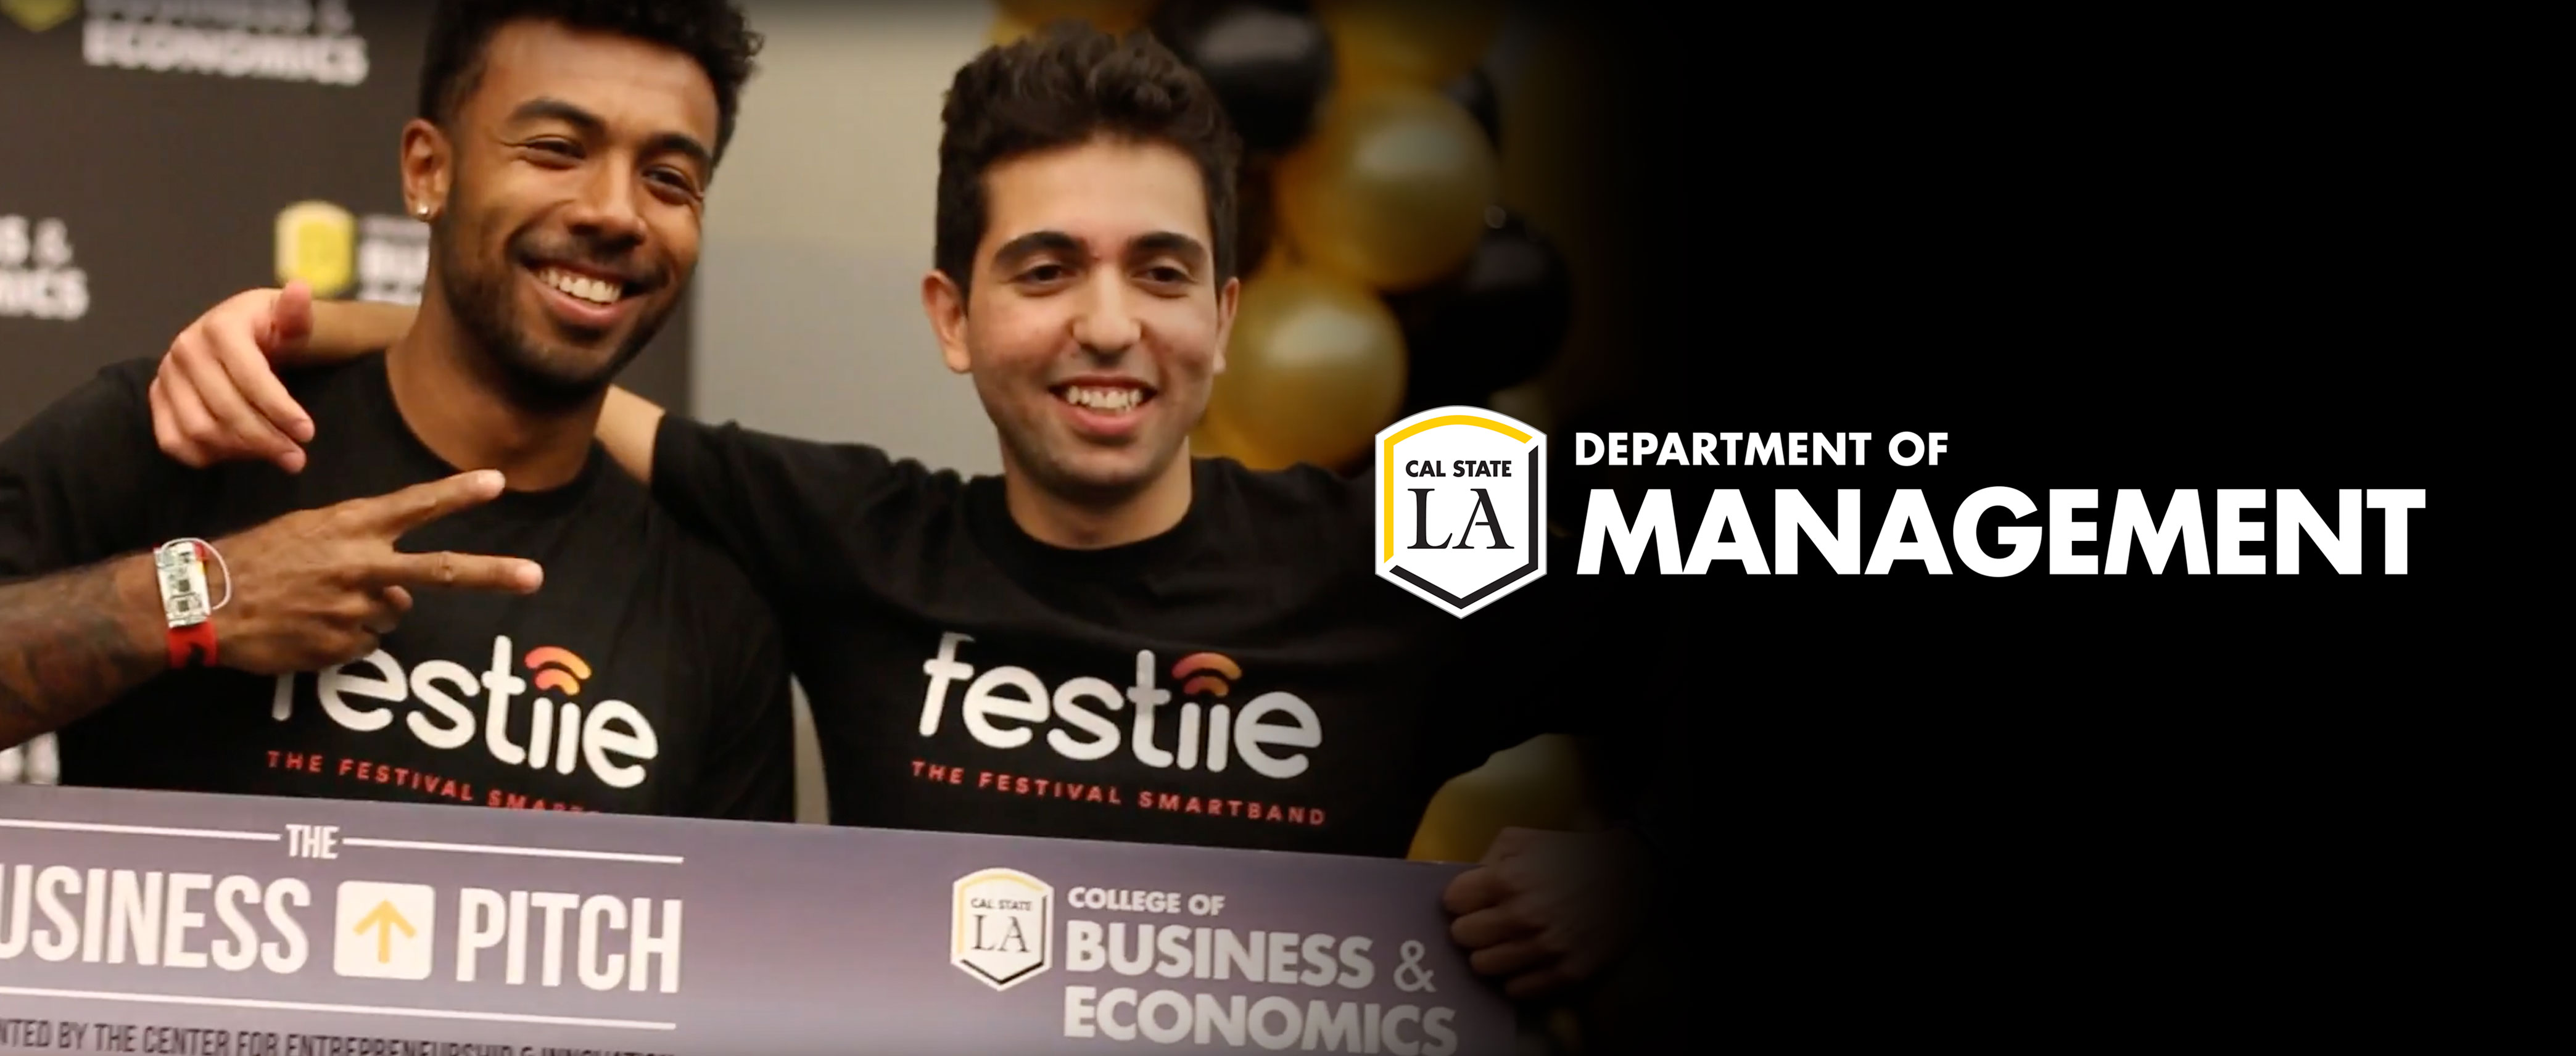 Cal State LA College of Business & Economics | Department of Managements